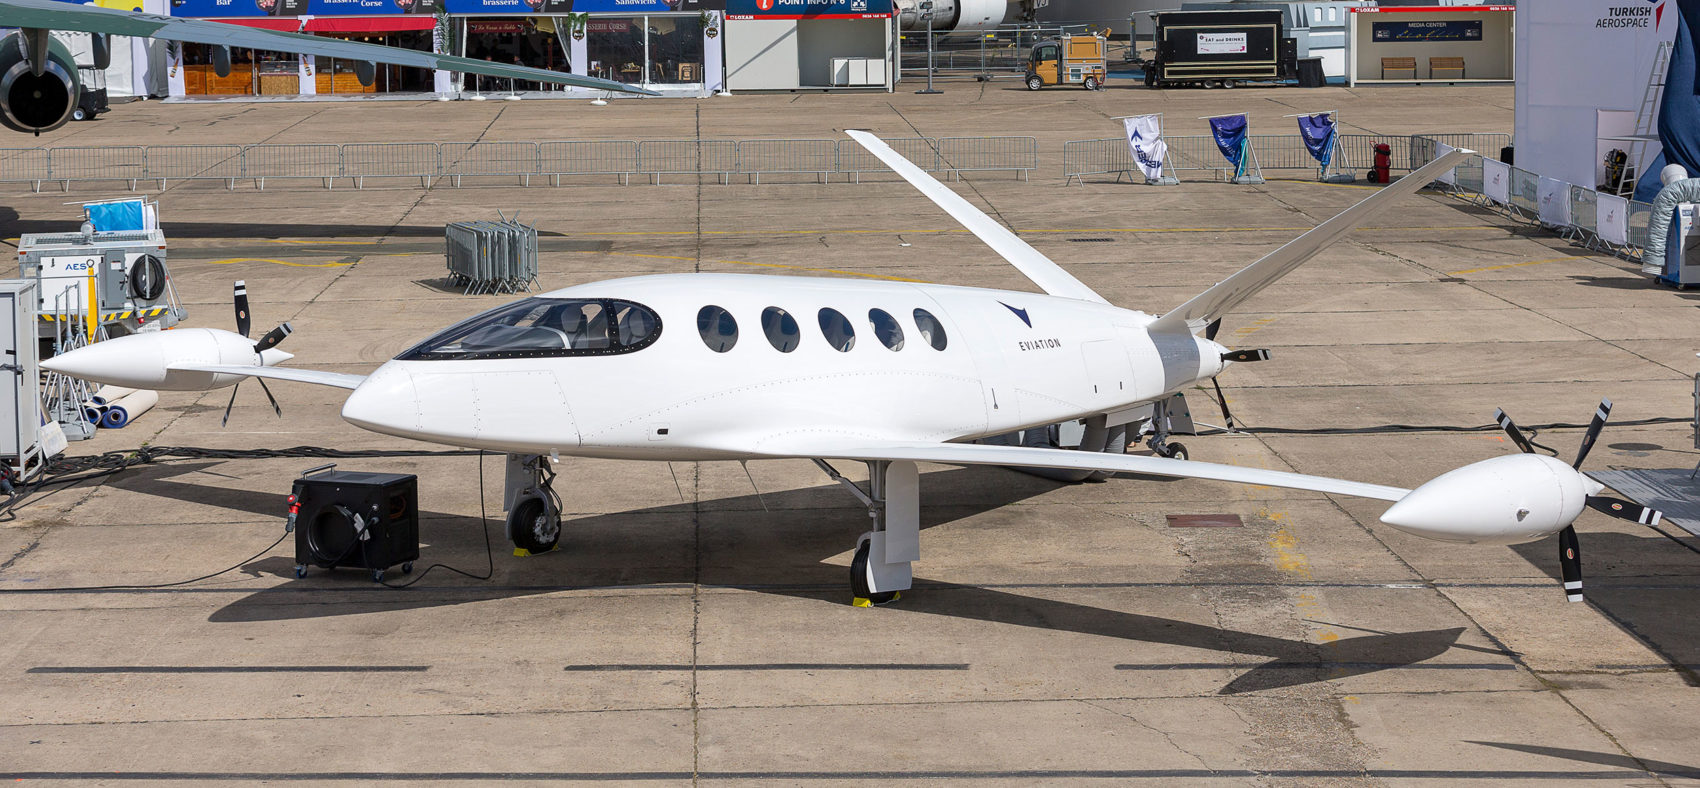 Eviation's Alice electric plane is seen at the Paris Air Show (Courtesy of Eviation)